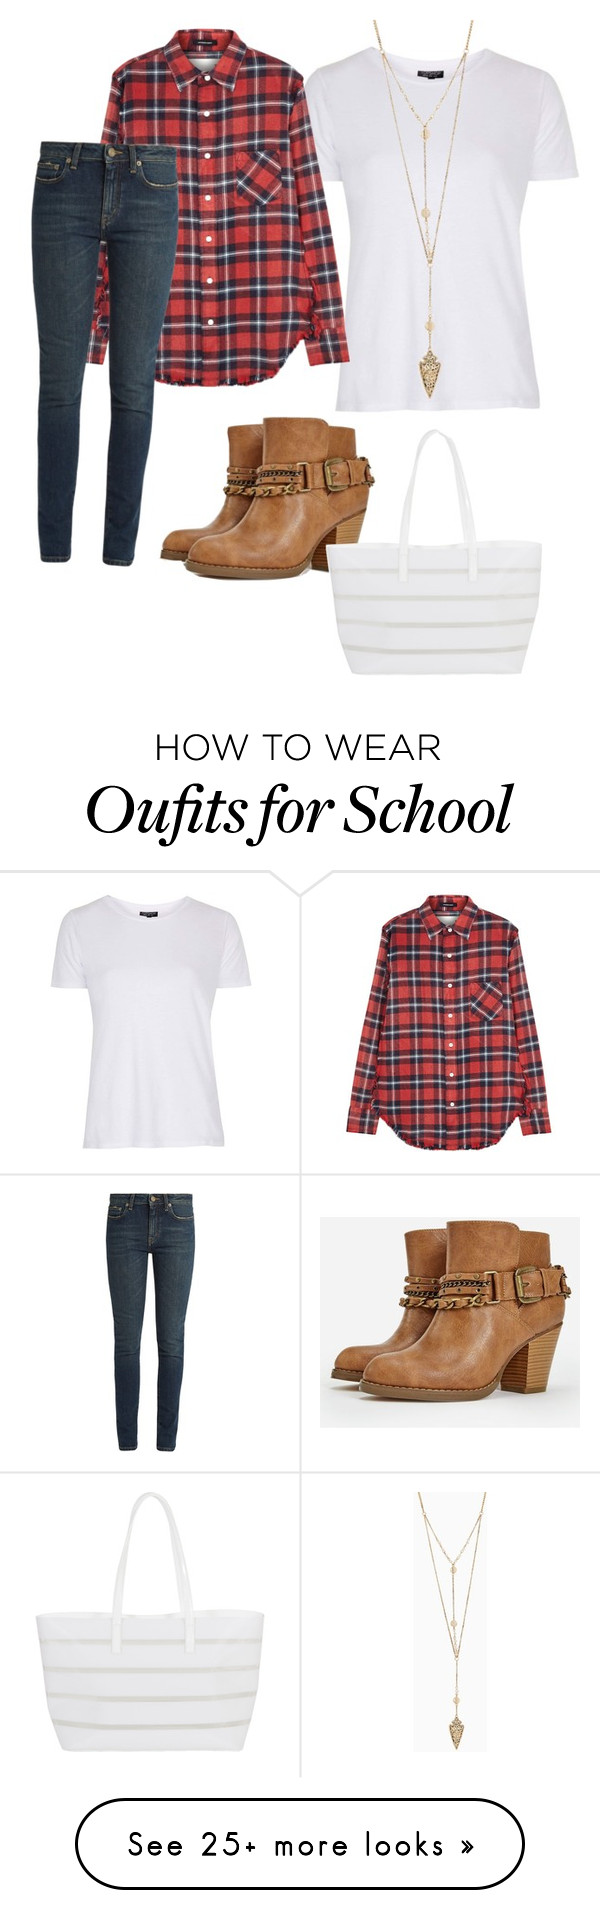 """""""School style"""" by ursula-cg on Polyvore featuring Topshop, R13, Yves Saint Laurent, JustFab and BUCO"""